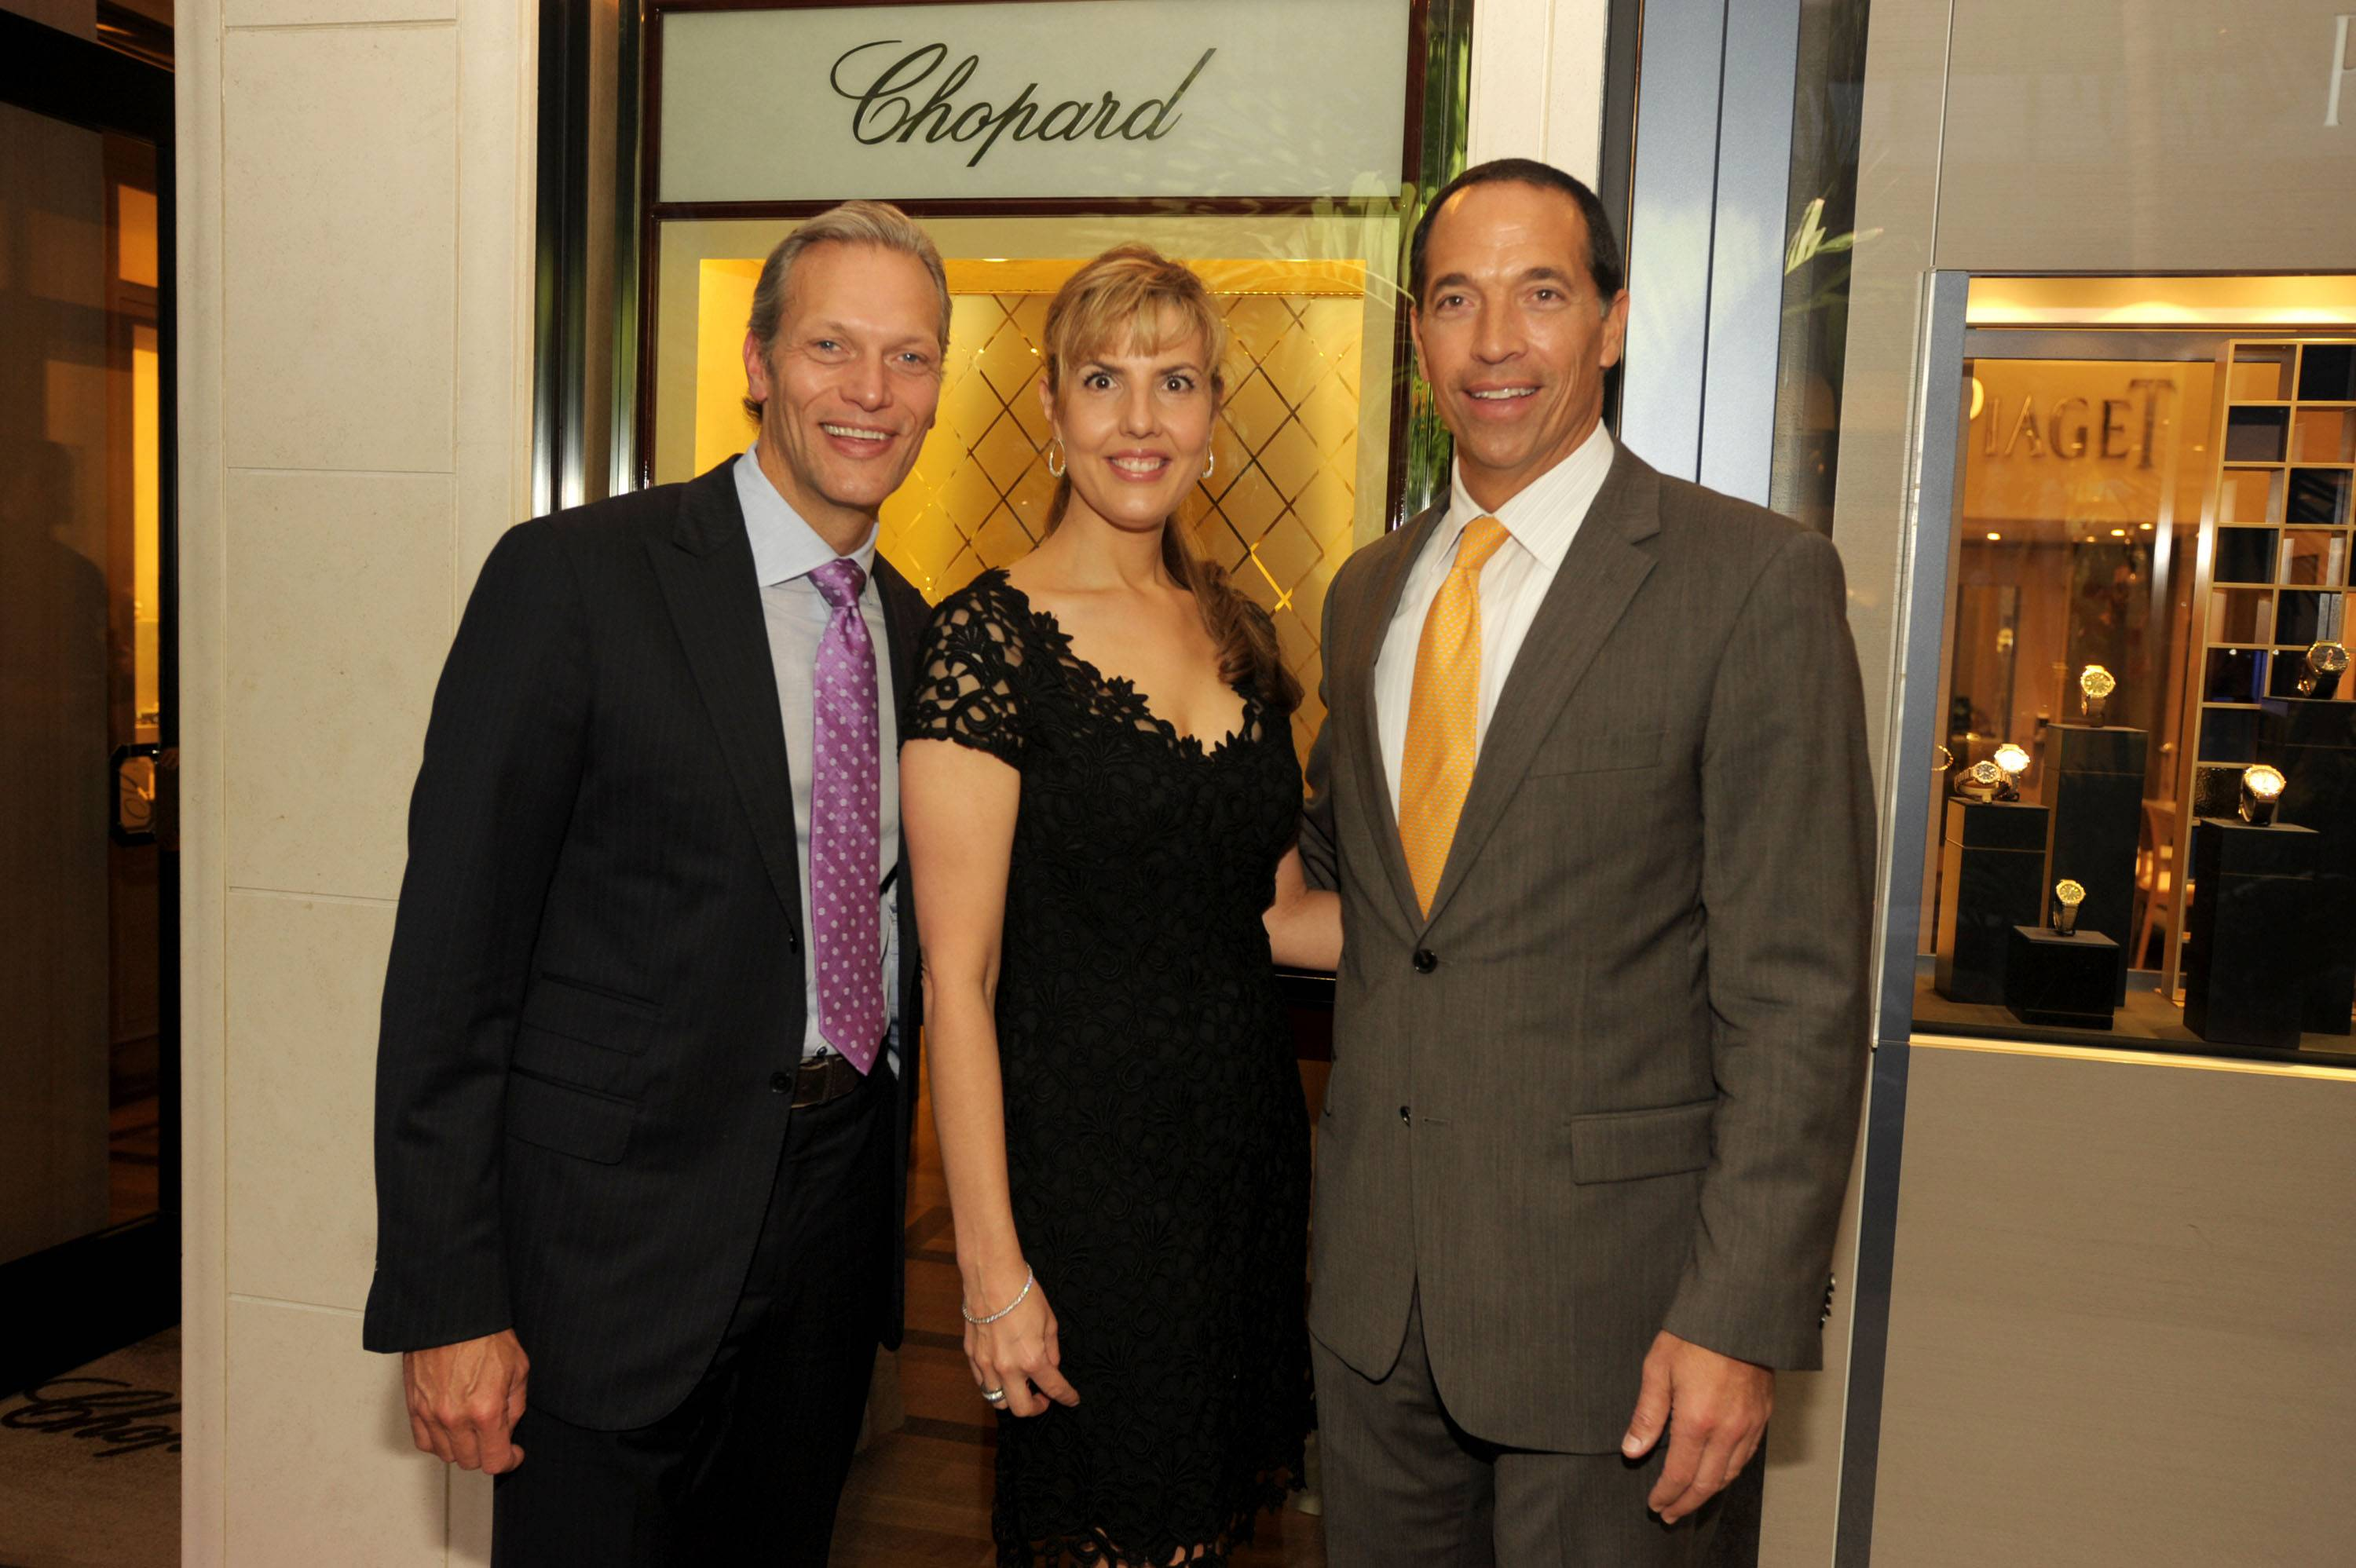 Grand Reopening of Chopard in Bal Harbour With Brand President Marc Hruschka